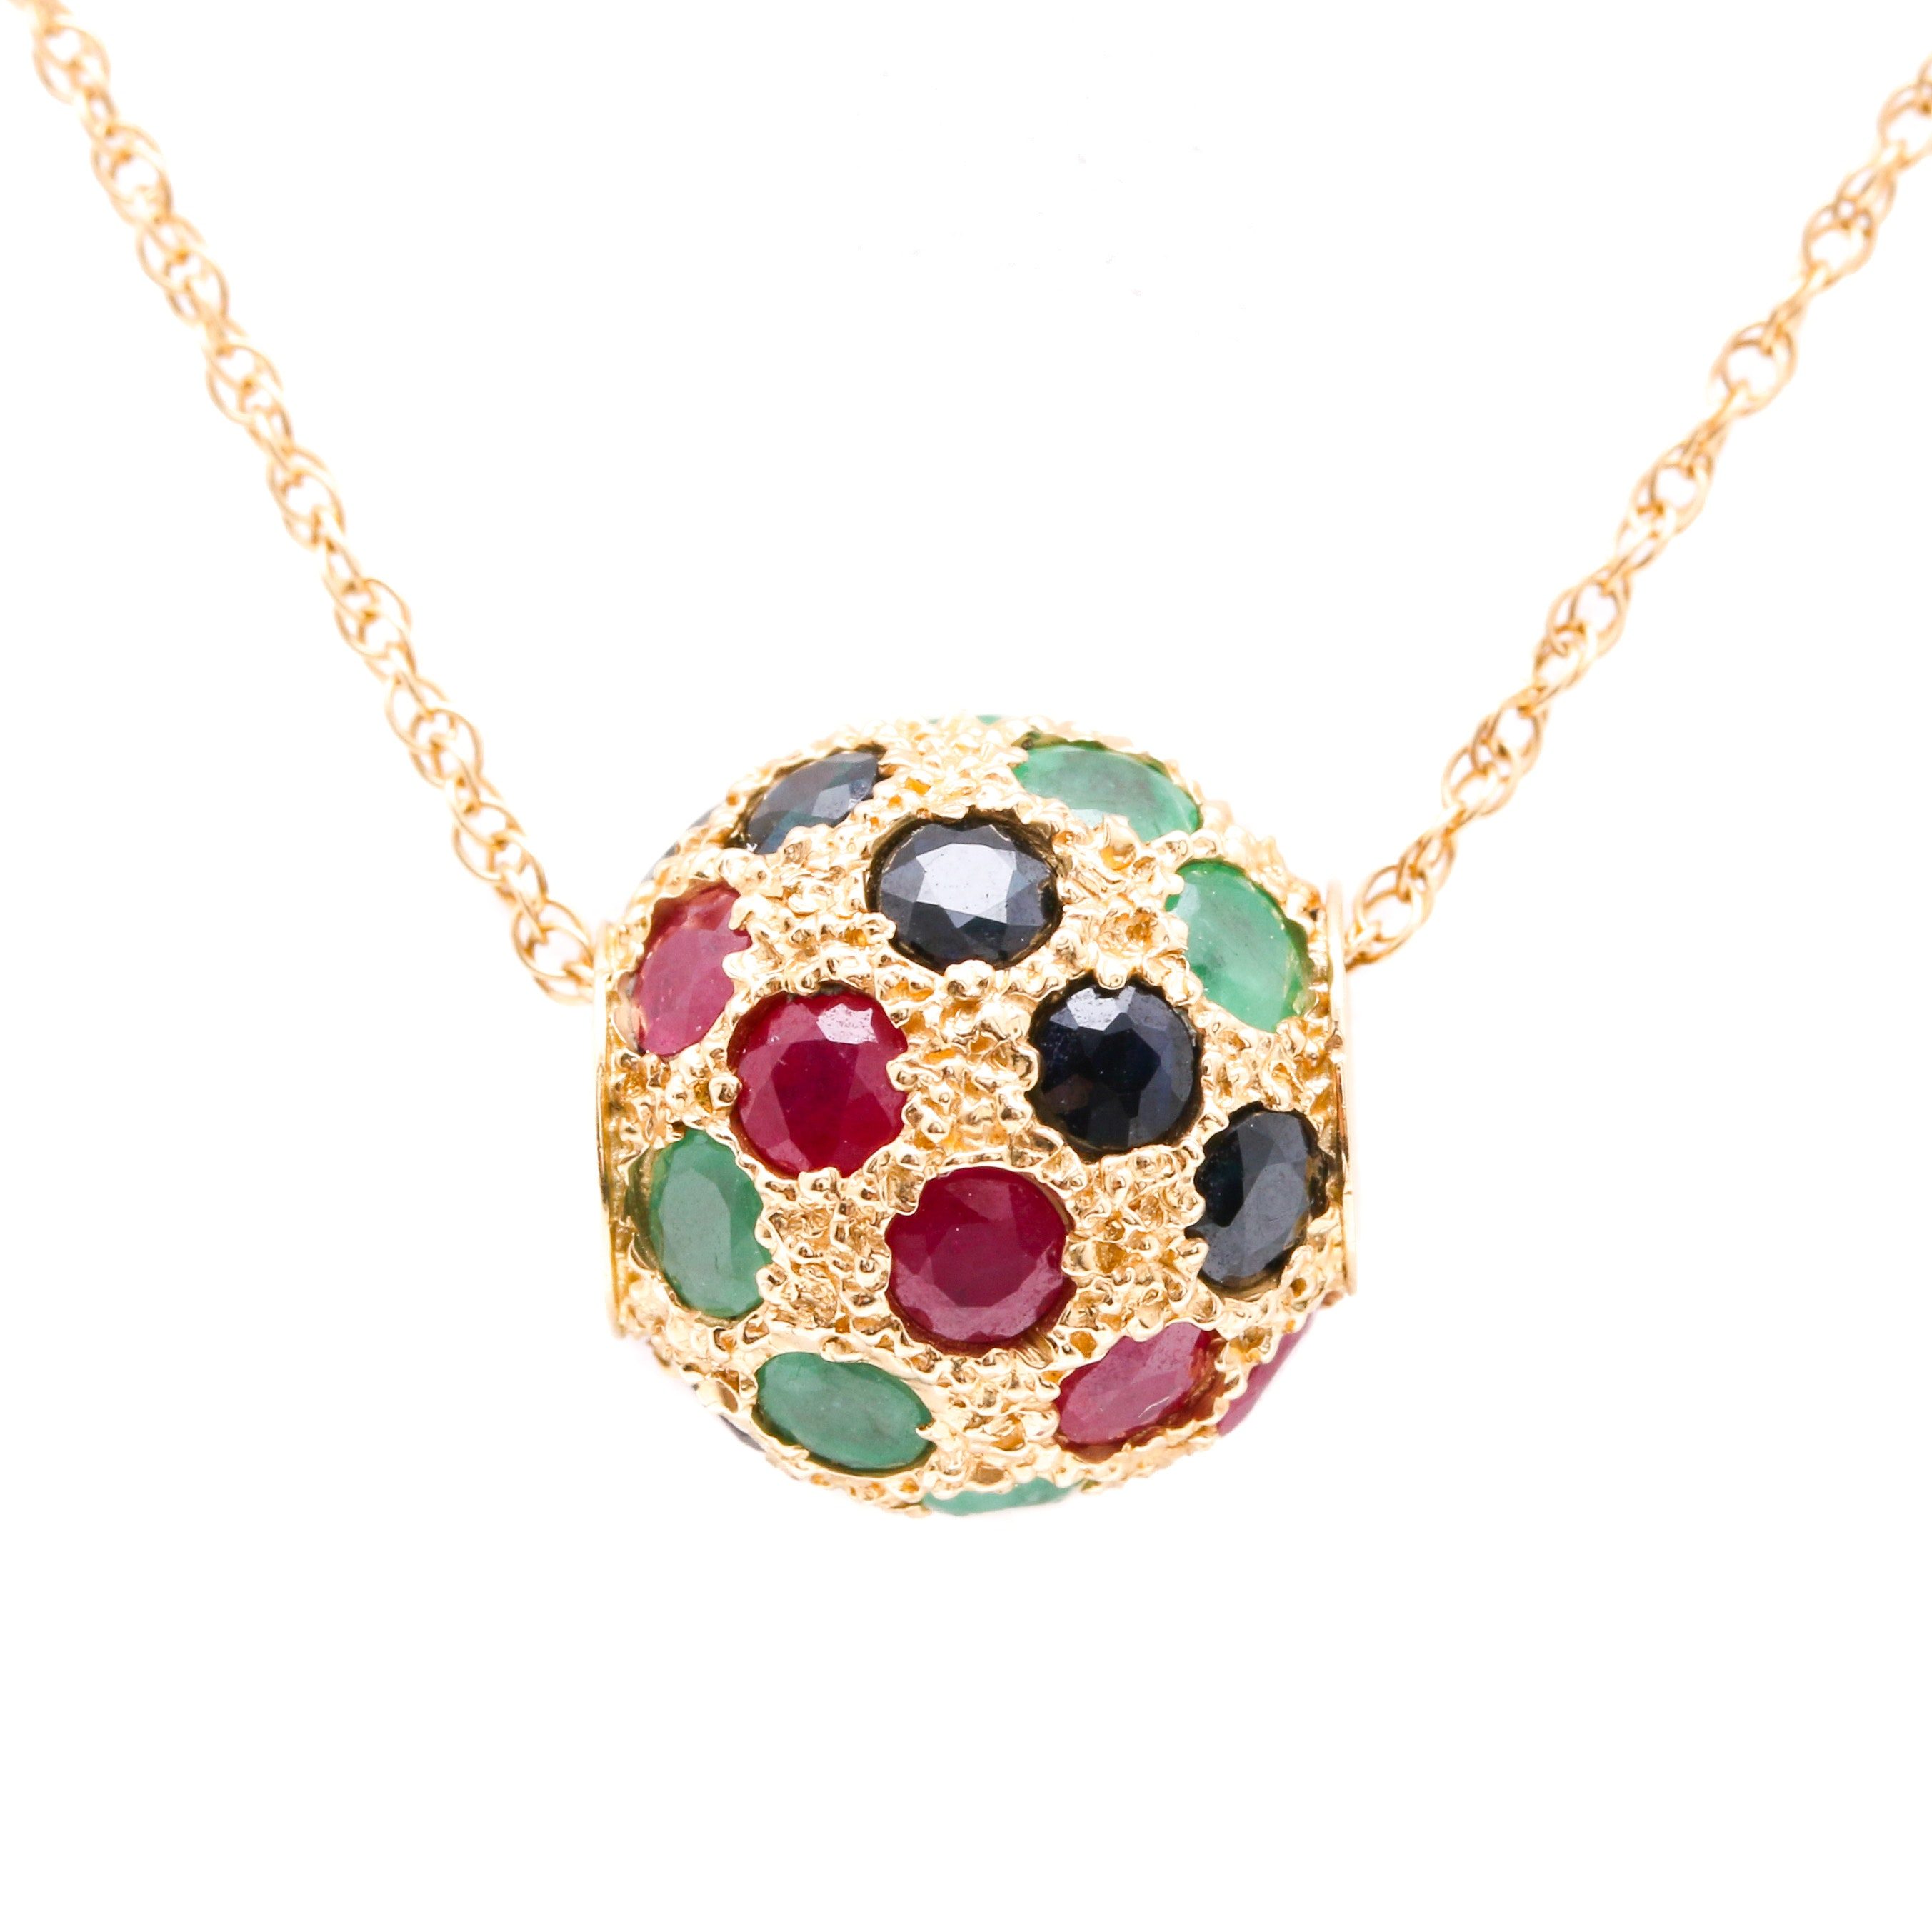 14K Yellow Gold Emerald, Ruby, and Sapphire Pendant and Neck Chain